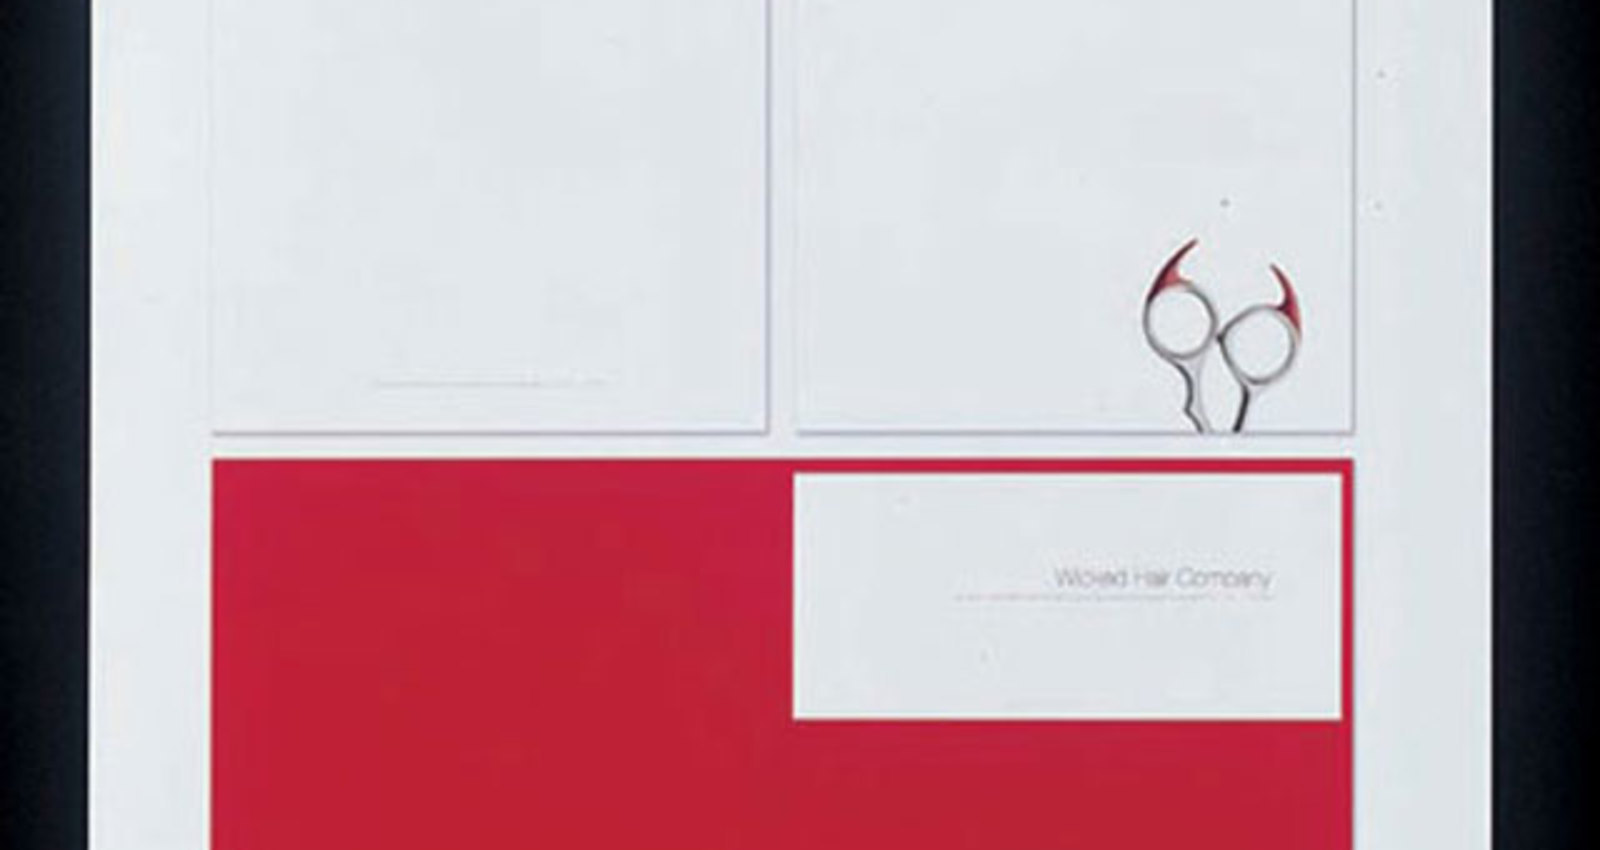 Wicked Hair Corporate Identity